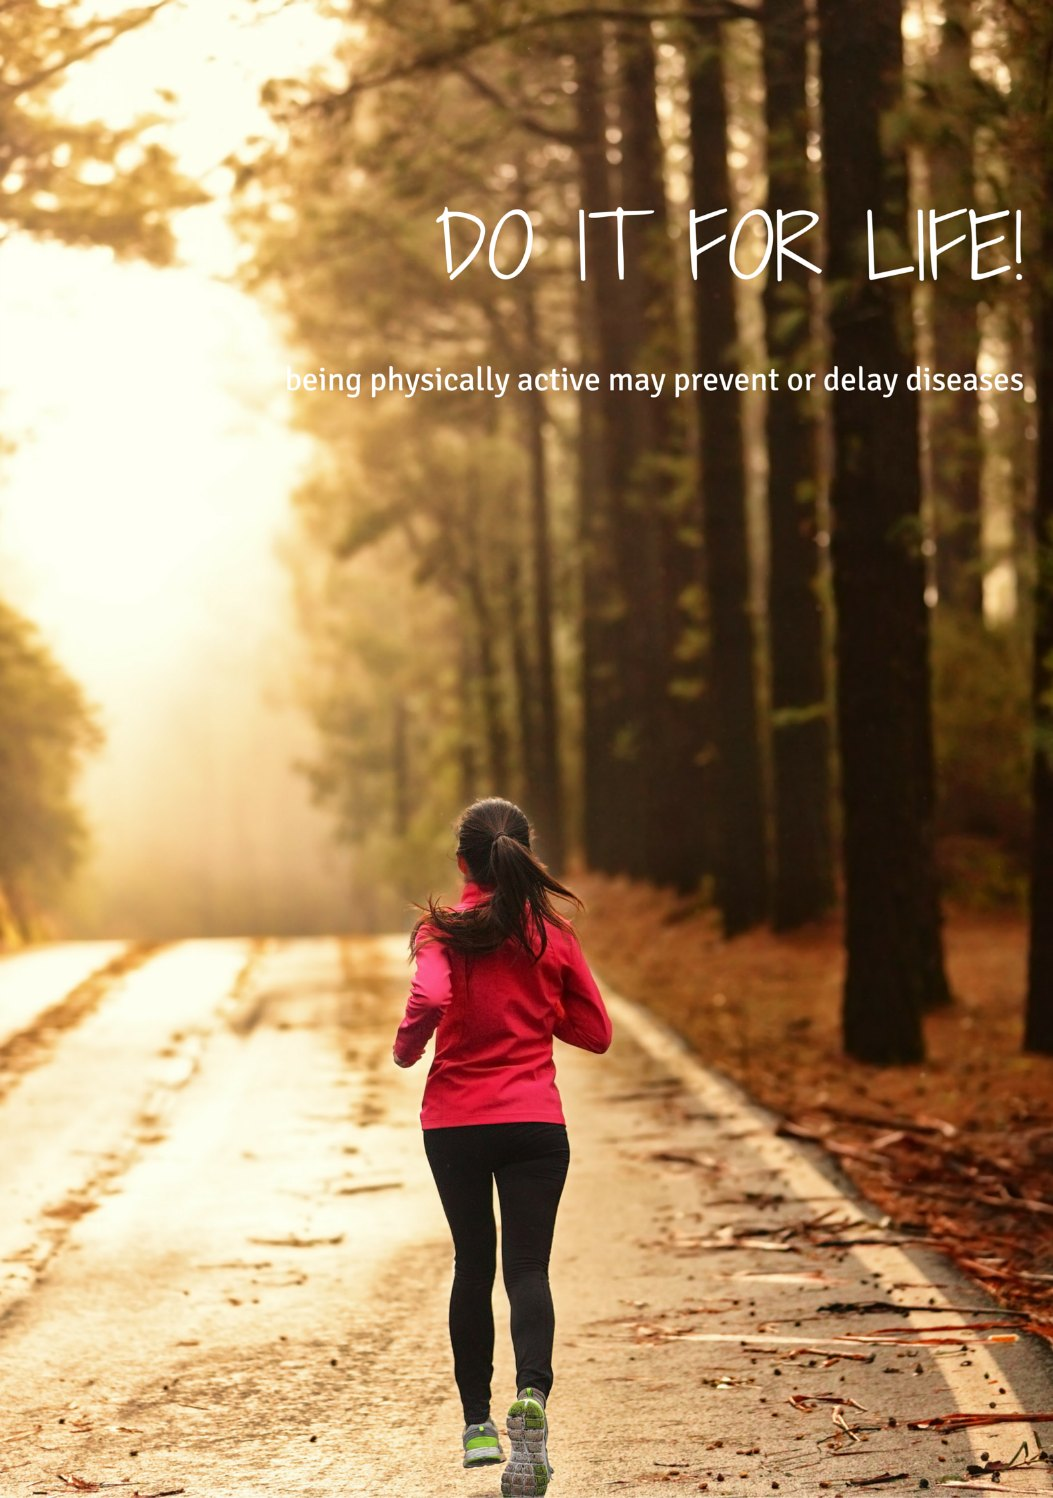 Do it for Life! Being physically active may prevent or delay diseases.